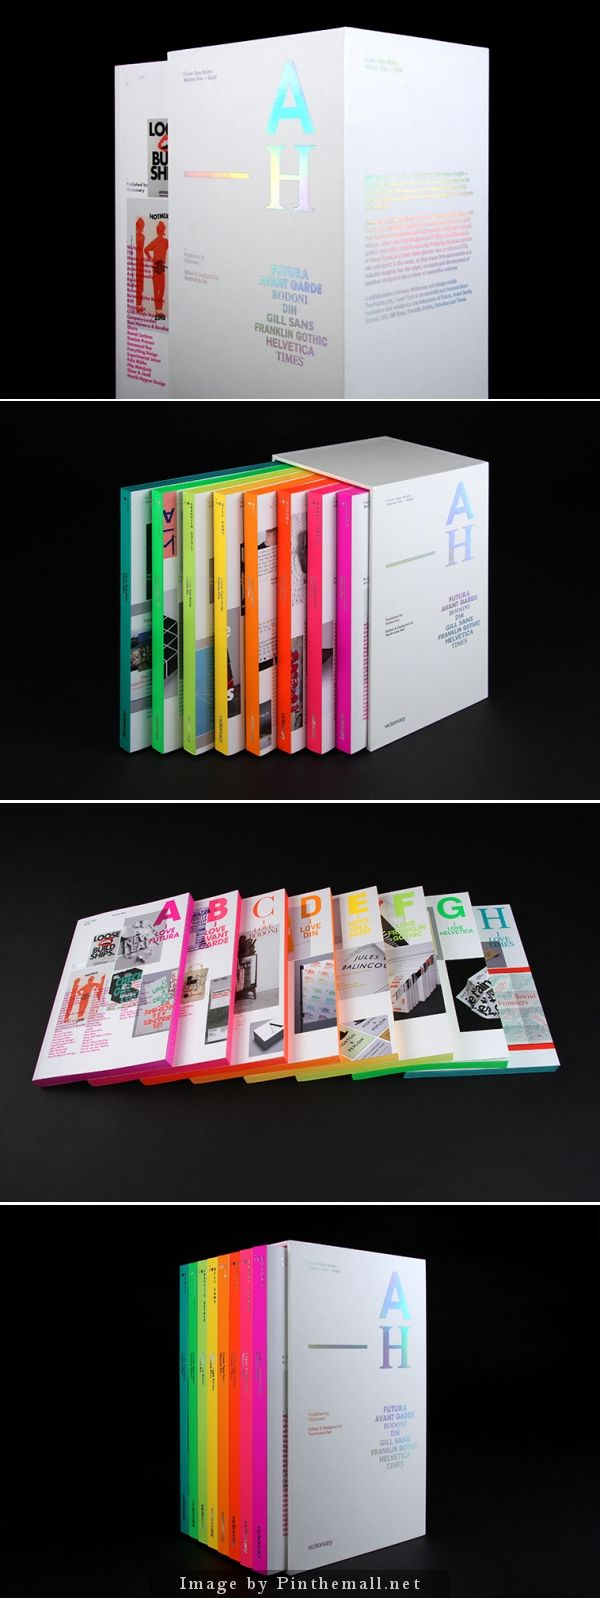 I Love Type Limited Box Set. In no way do I need this, but damn, I want it hard.